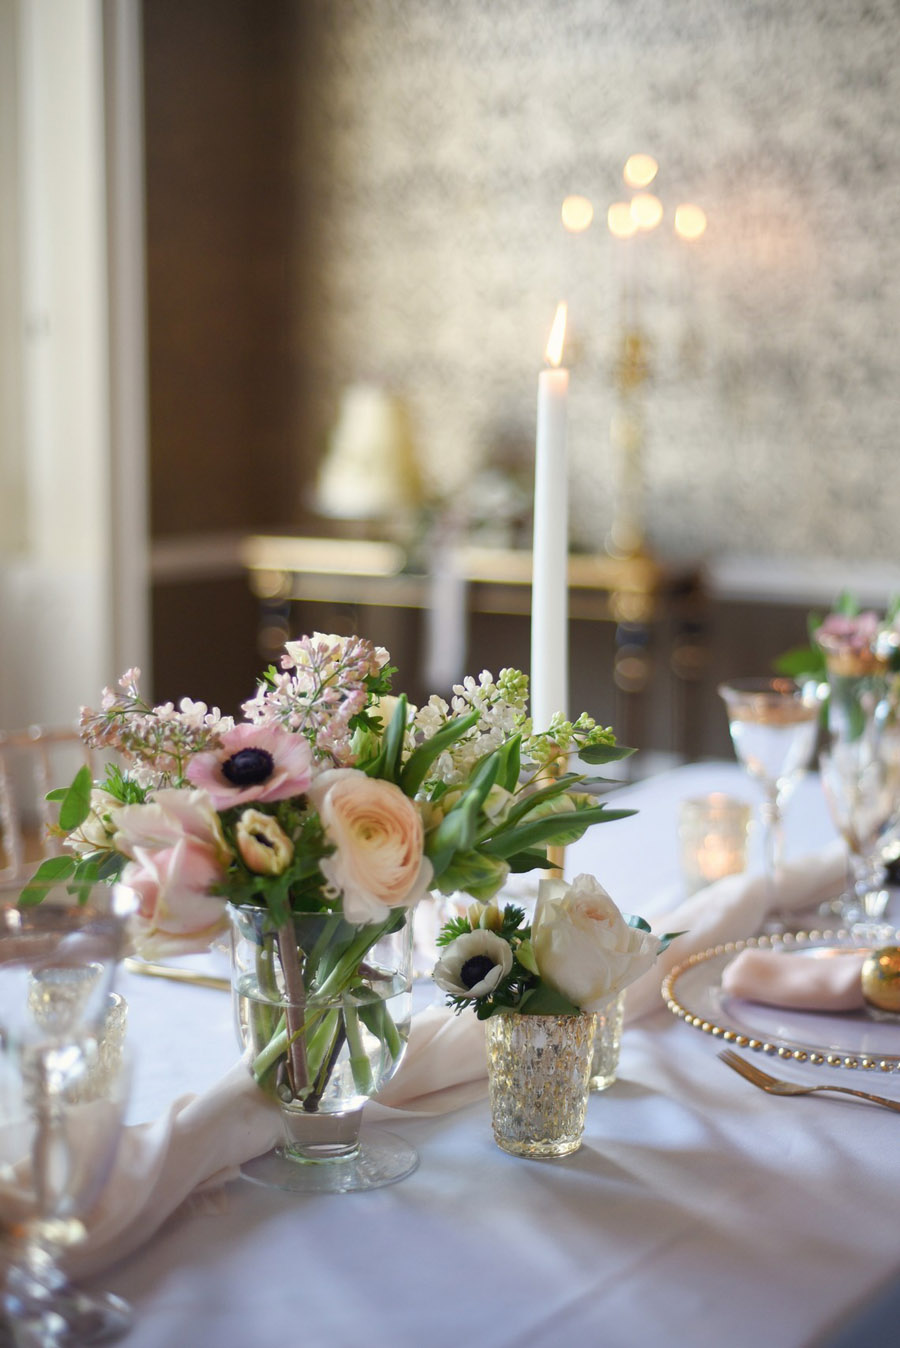 Wedding venue coordinators and wedding planners - what's the difference? Katie Stocks from The Events Designers explains (7)